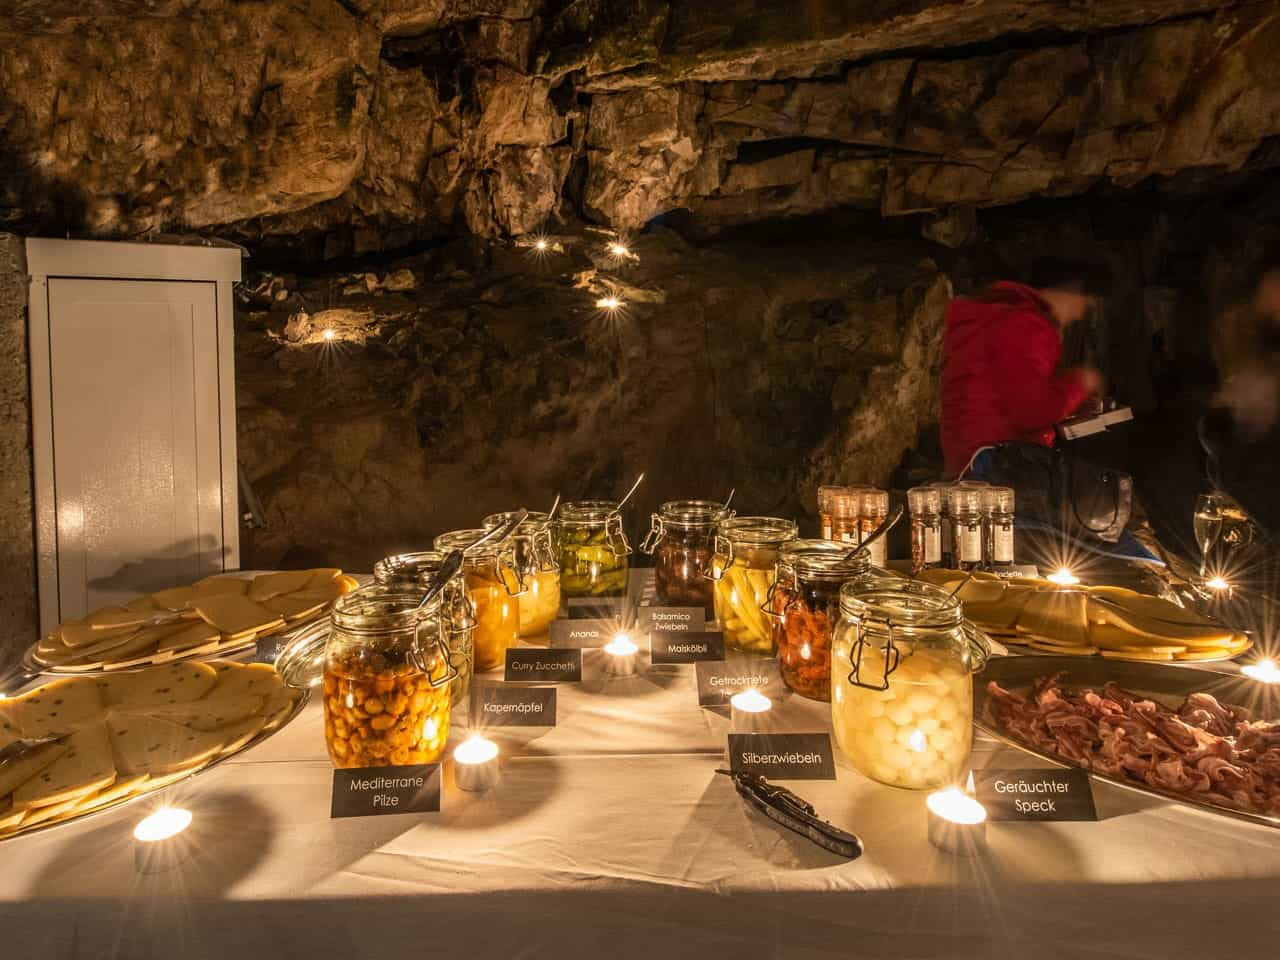 Familien Ausflüge im Winter: Mikrokosmos Jungfrau - Exklusives Candle-light Höhlenraclette